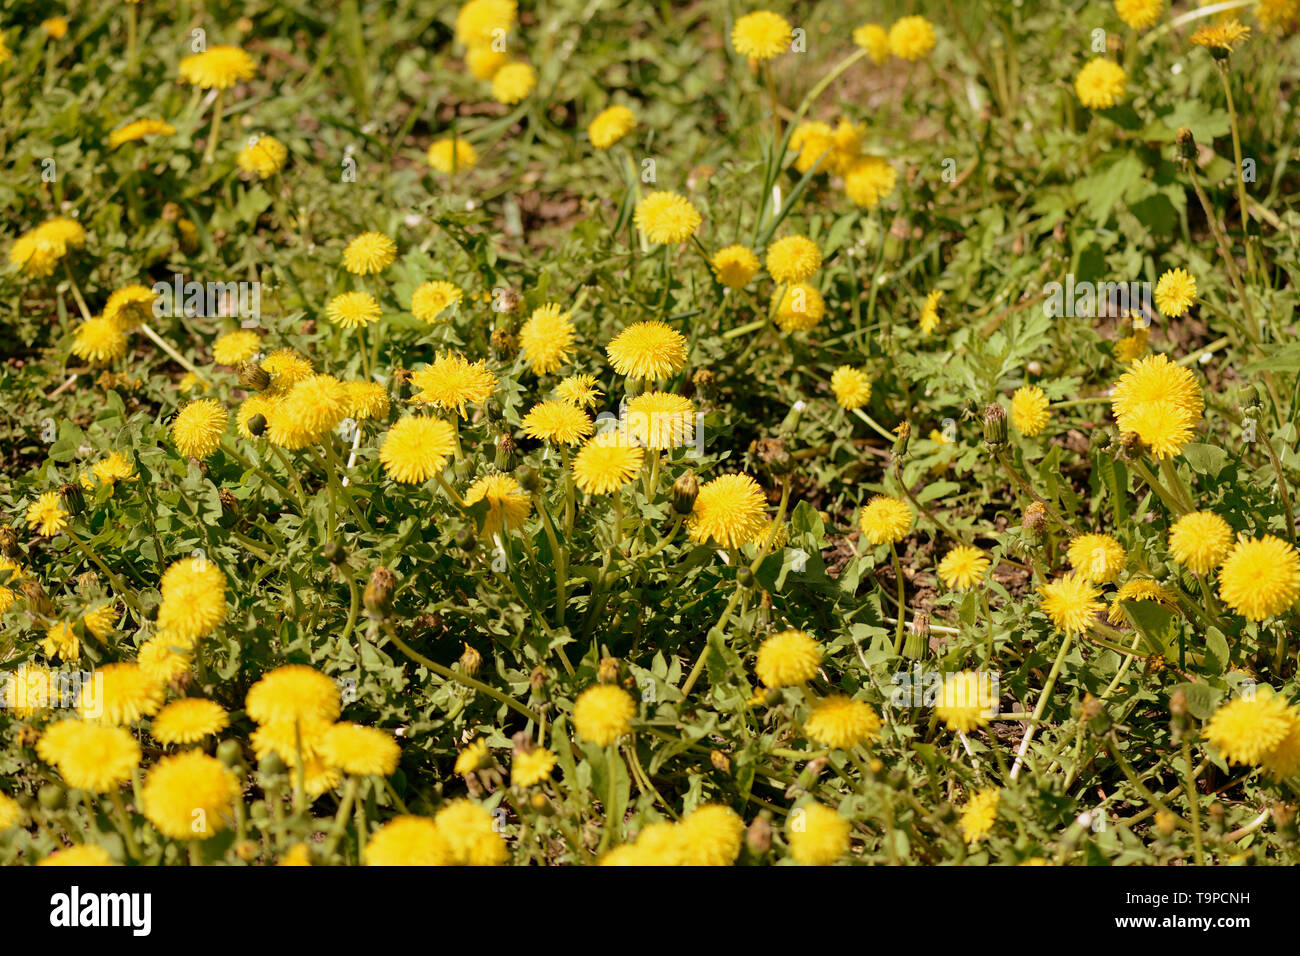 Yellow dandelions on a green lawn on a sunny day. Retro style toned - Stock Image